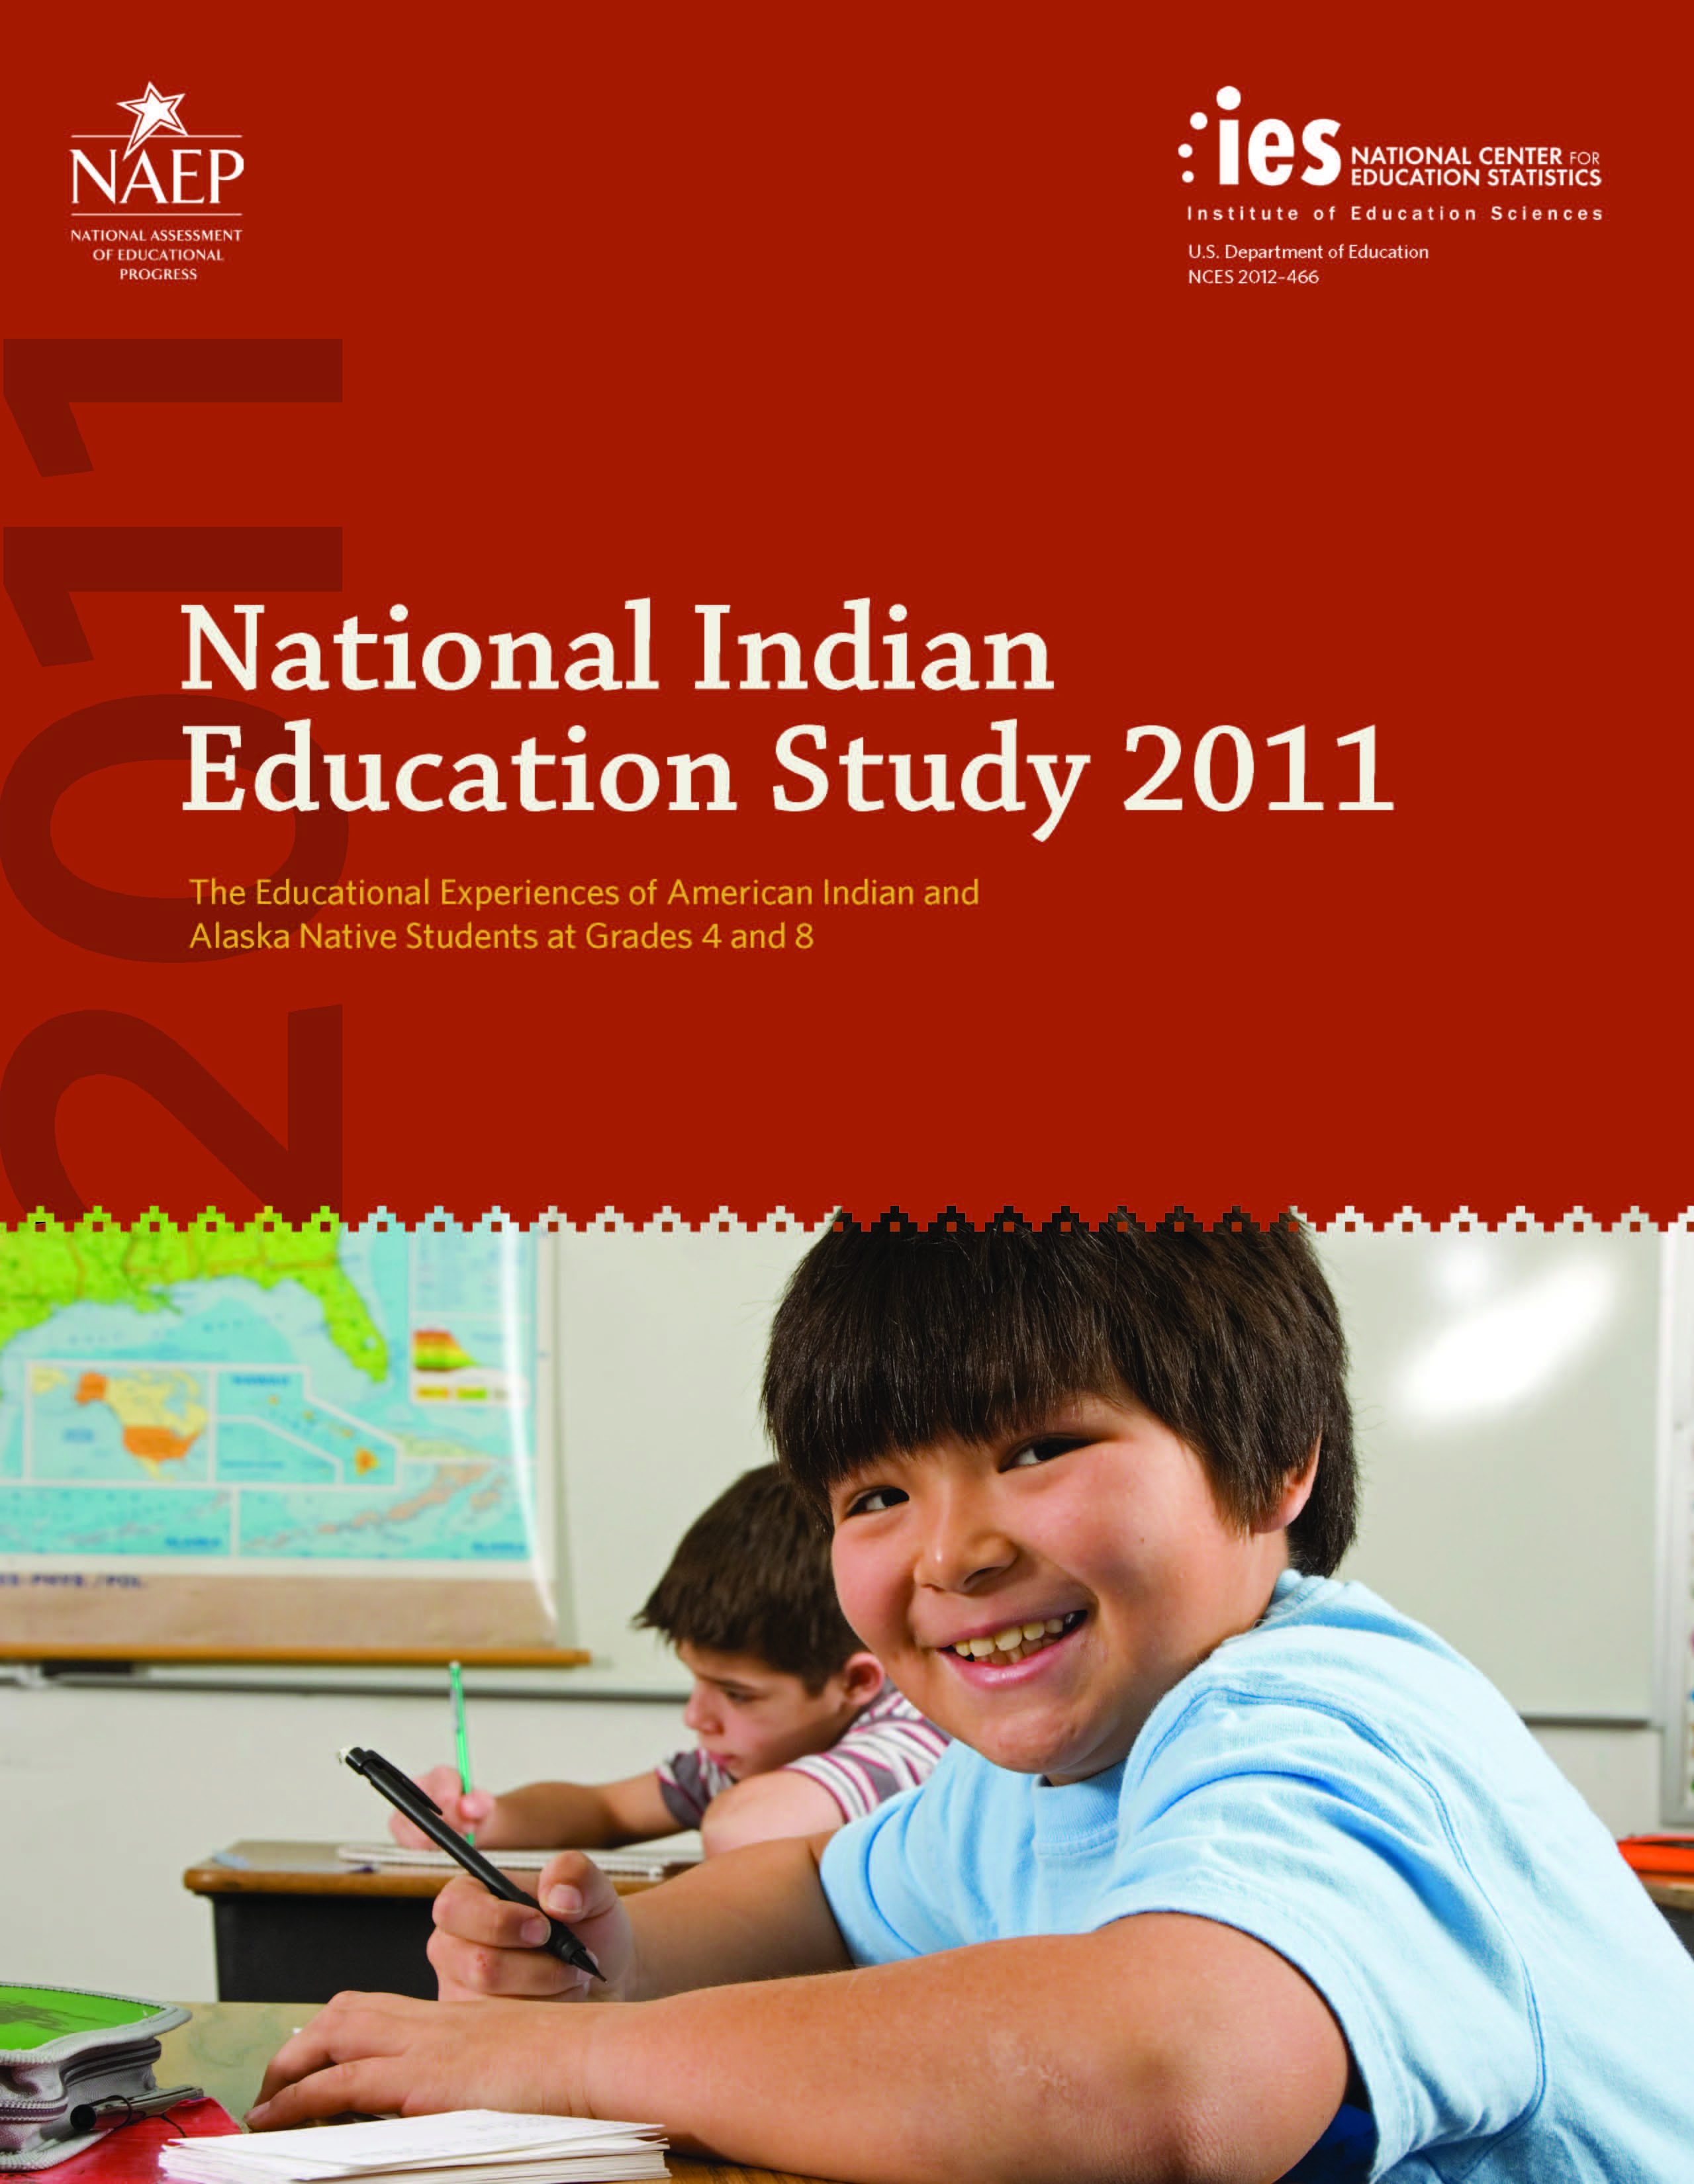 Nces Releases Condition Of Education >> Nces Releases 2011 National Indian Education Study Report